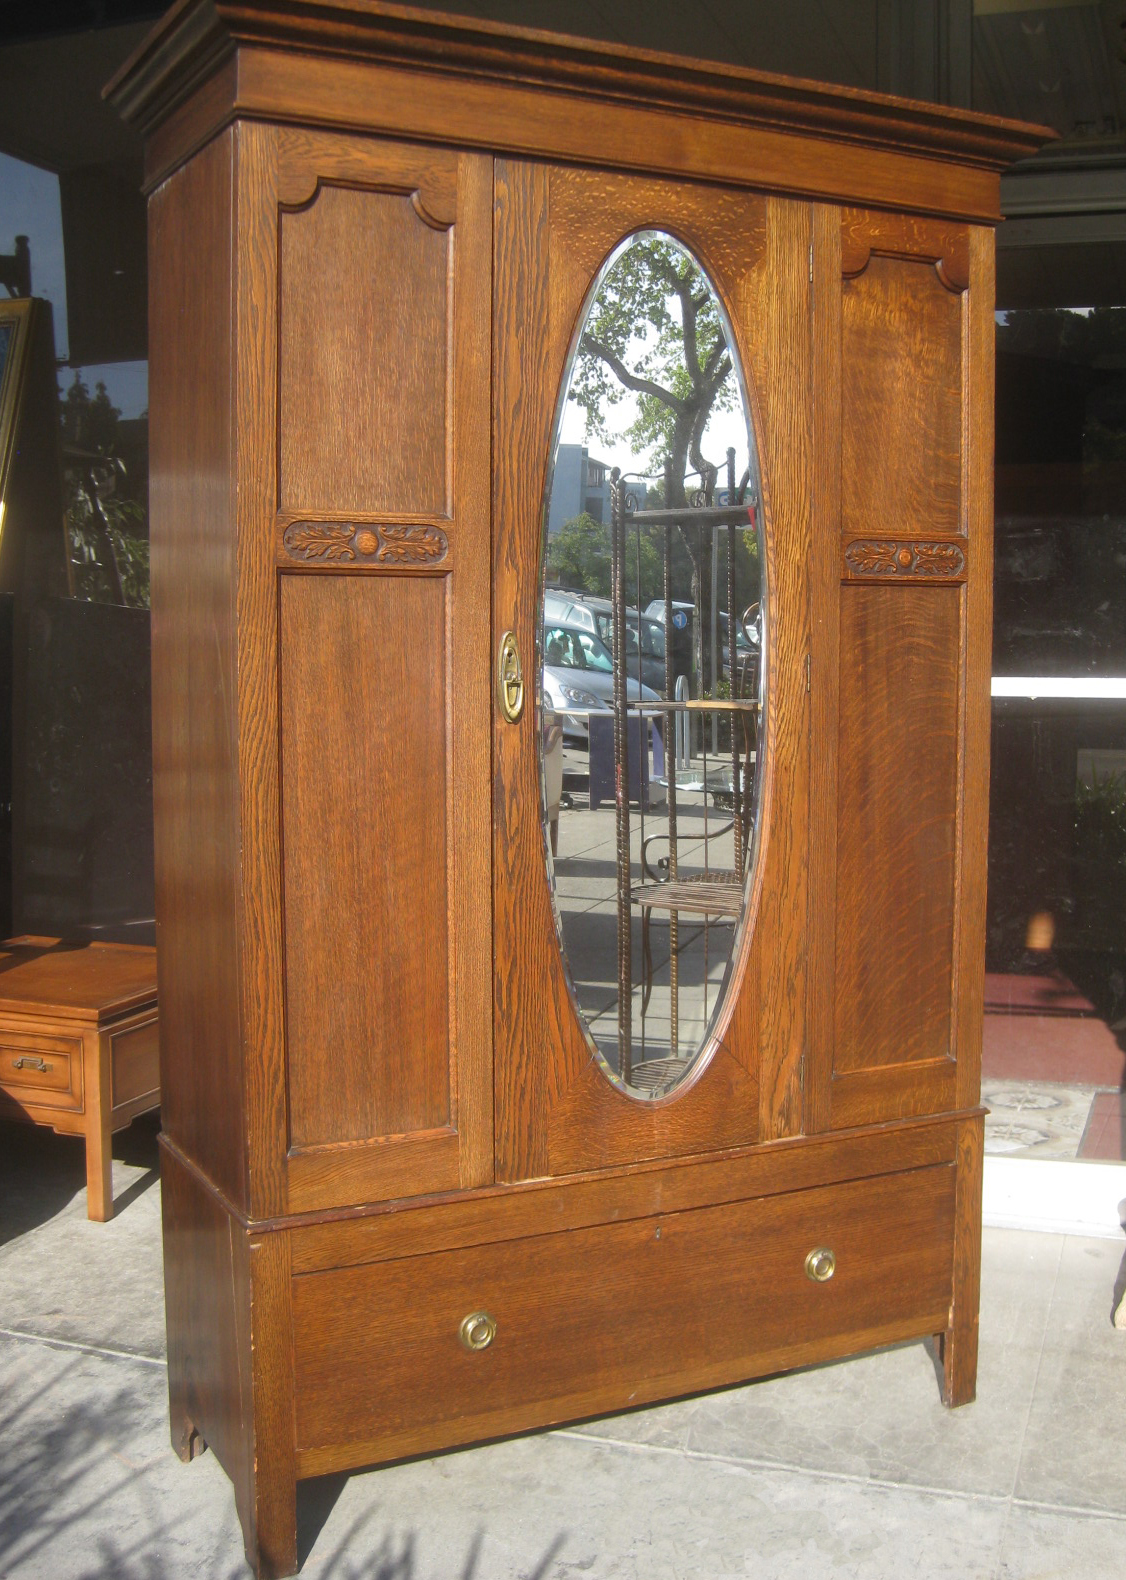 UHURU FURNITURE & COLLECTIBLES: SOLD - Antique Clothing ...